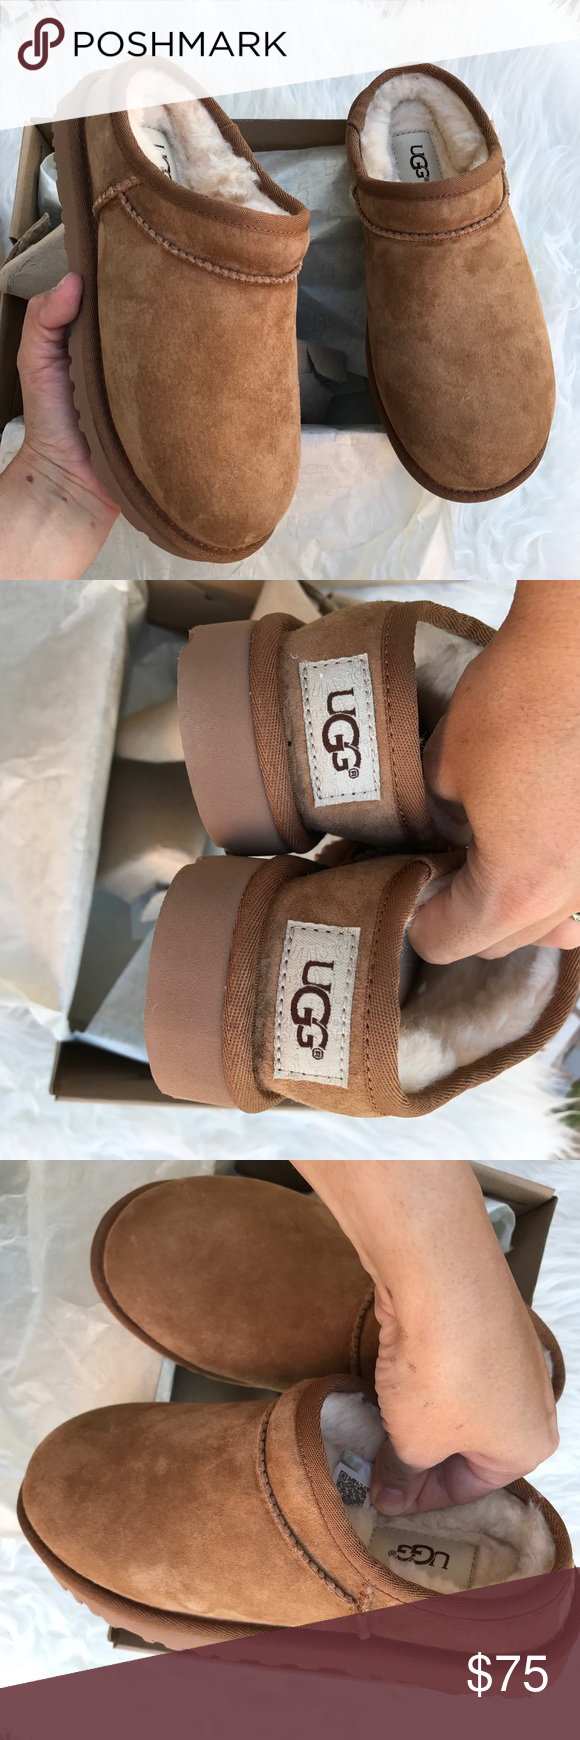 UGG classic water resistant slippers new sz 6 new UGG classic water resistant slippers new sz 6 new 100% authentic! Improved style ; more durable, water resistant and new packaging . Itemcloset#docin UGG Shoes